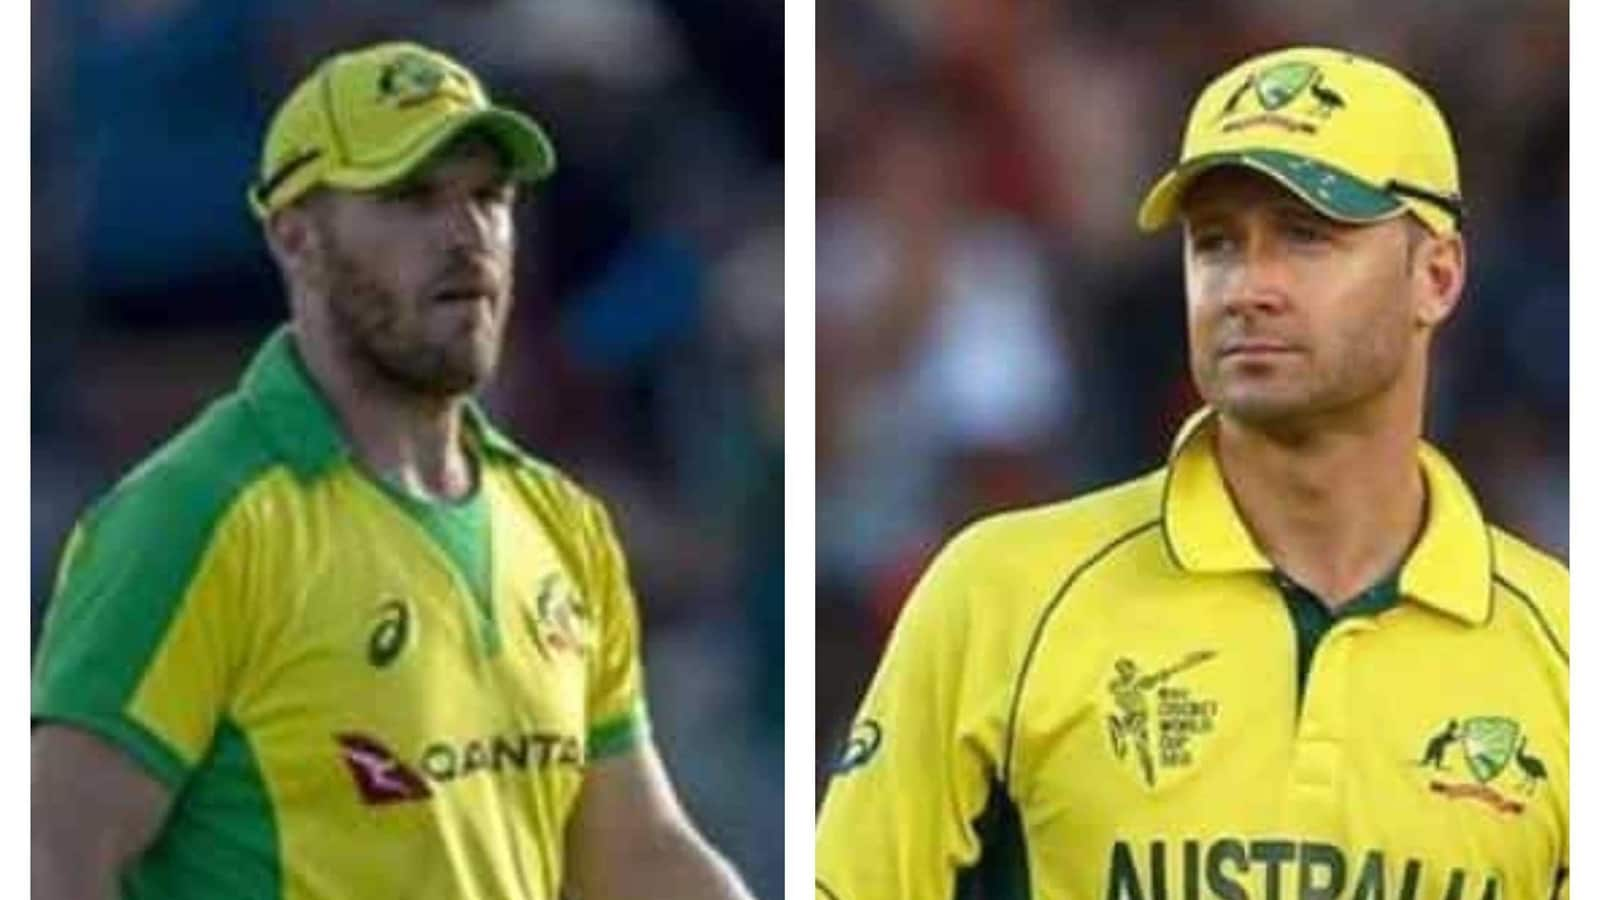 'Australian selectors wrong or every IPL franchise,' Michael Clarke questions Aaron Finch at IPL 2021 Auction - Hindustan Times